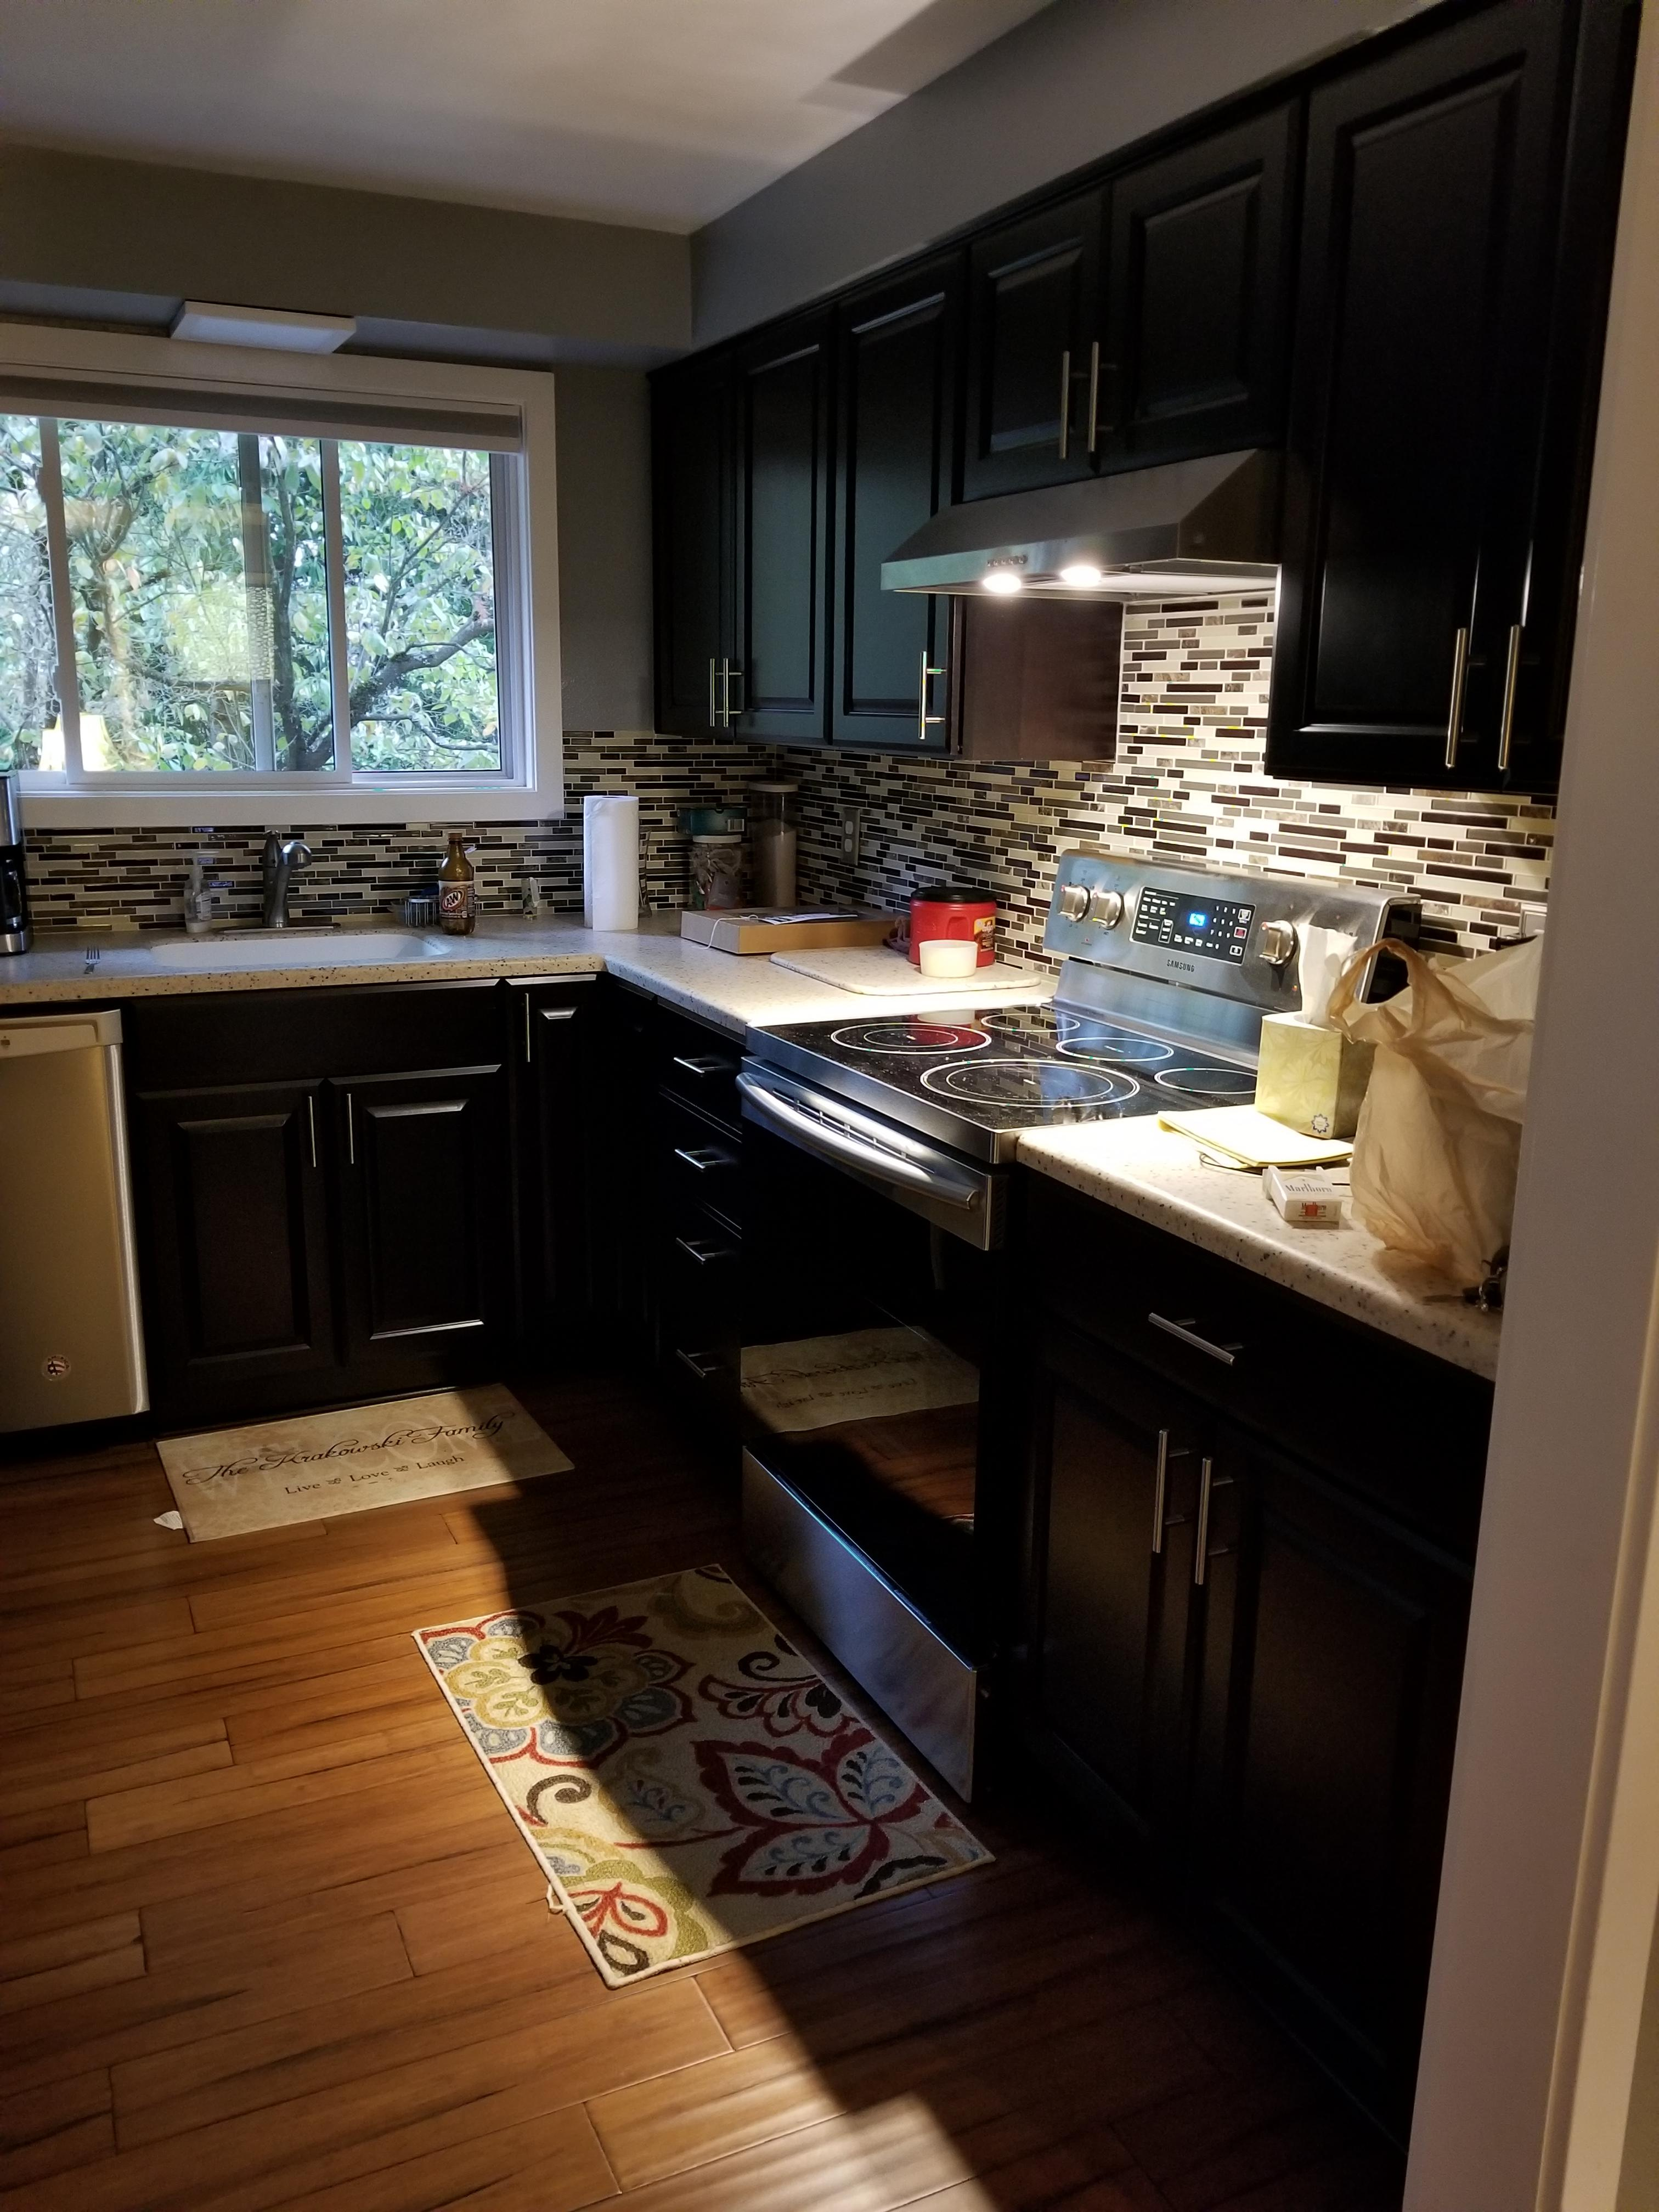 58 Reviews Of Lowe S Kitchen Cabinets Page 3